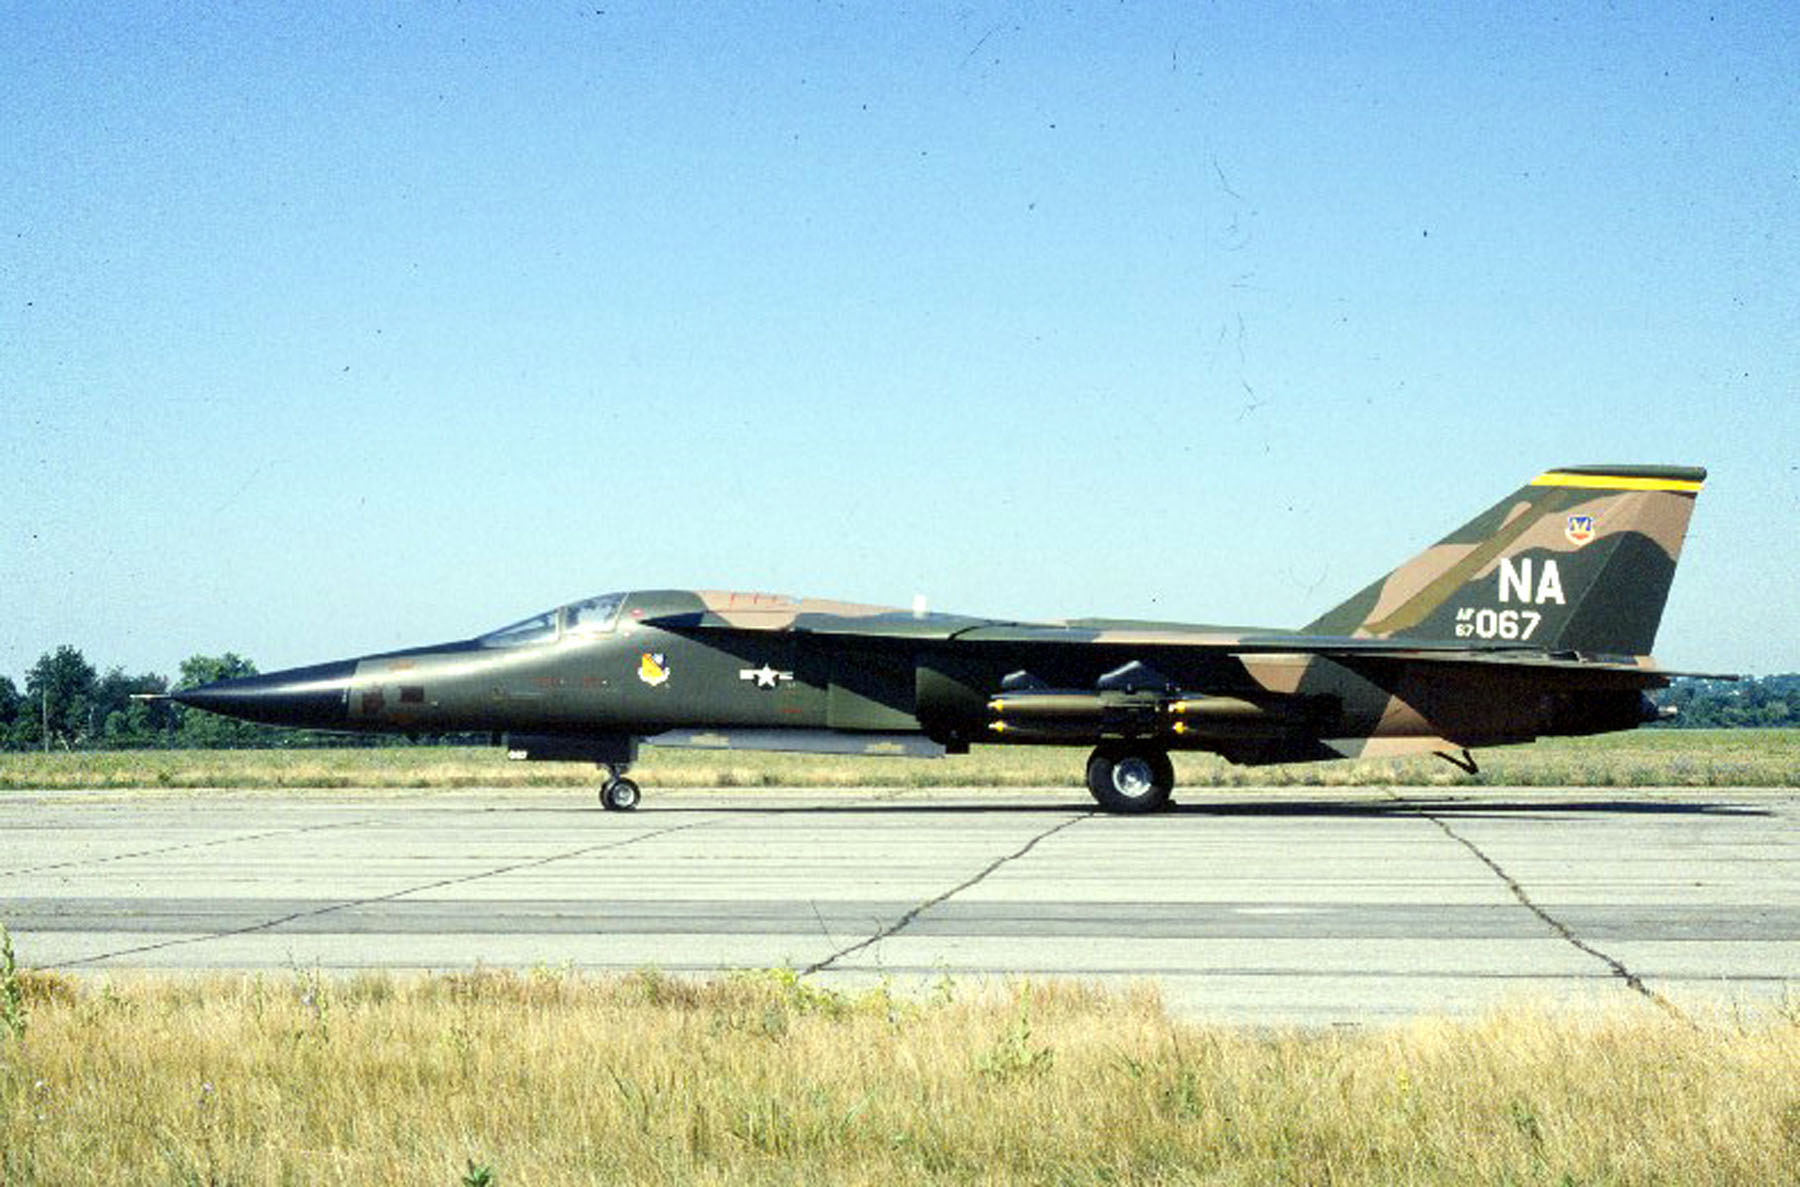 File:General Dynamics F-111A USAF.jpg - Wikimedia Commons